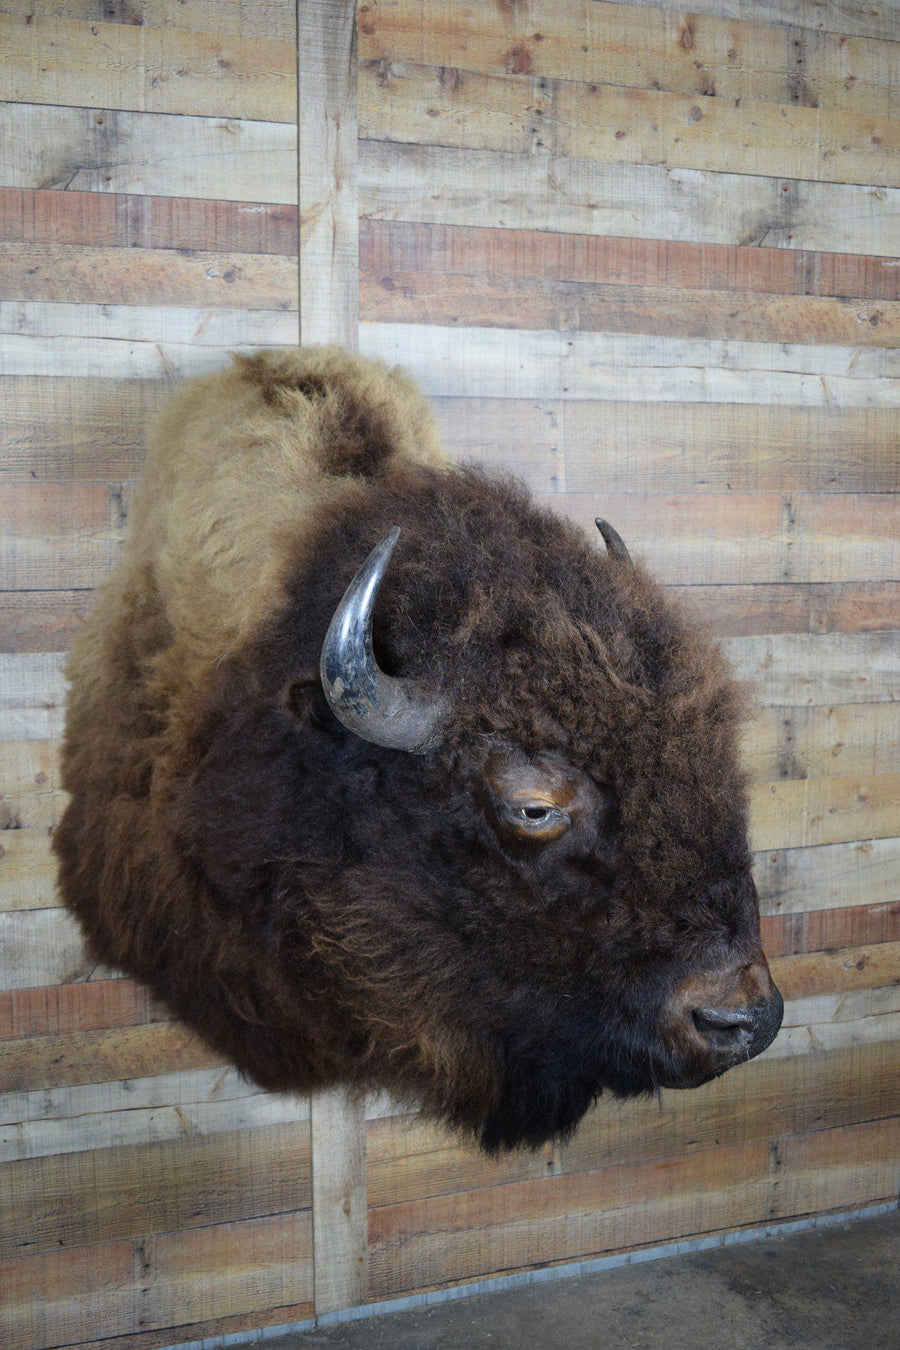 Genuine Mounted Buffalo - Western - Lodge - Cabin - Rustic Deco Incorporated